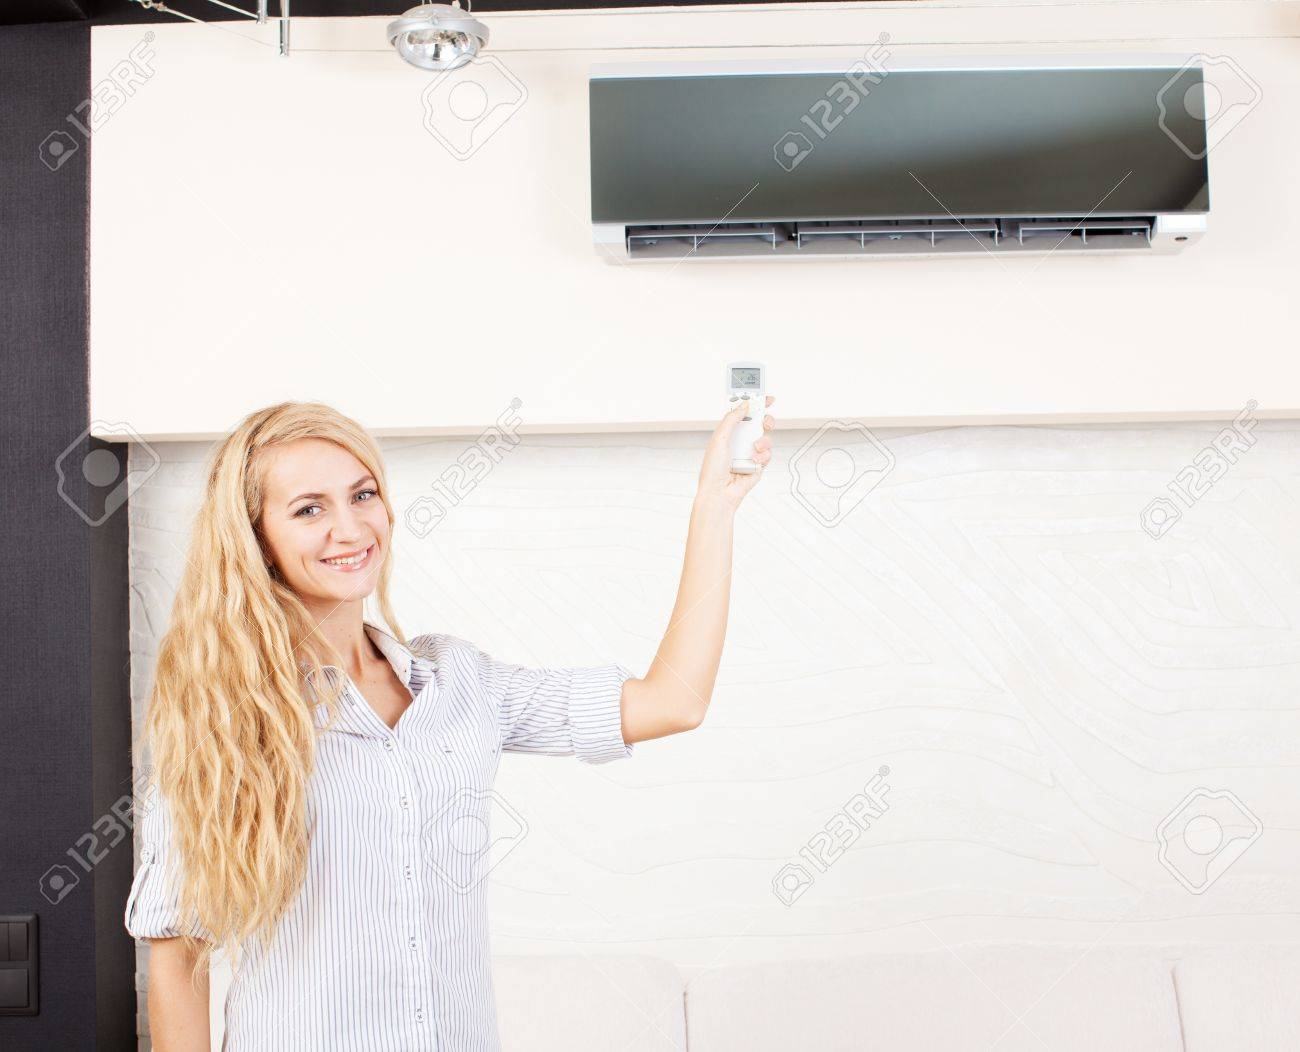 Female holding a remote control air conditioner at home Stock Photo - 19502365